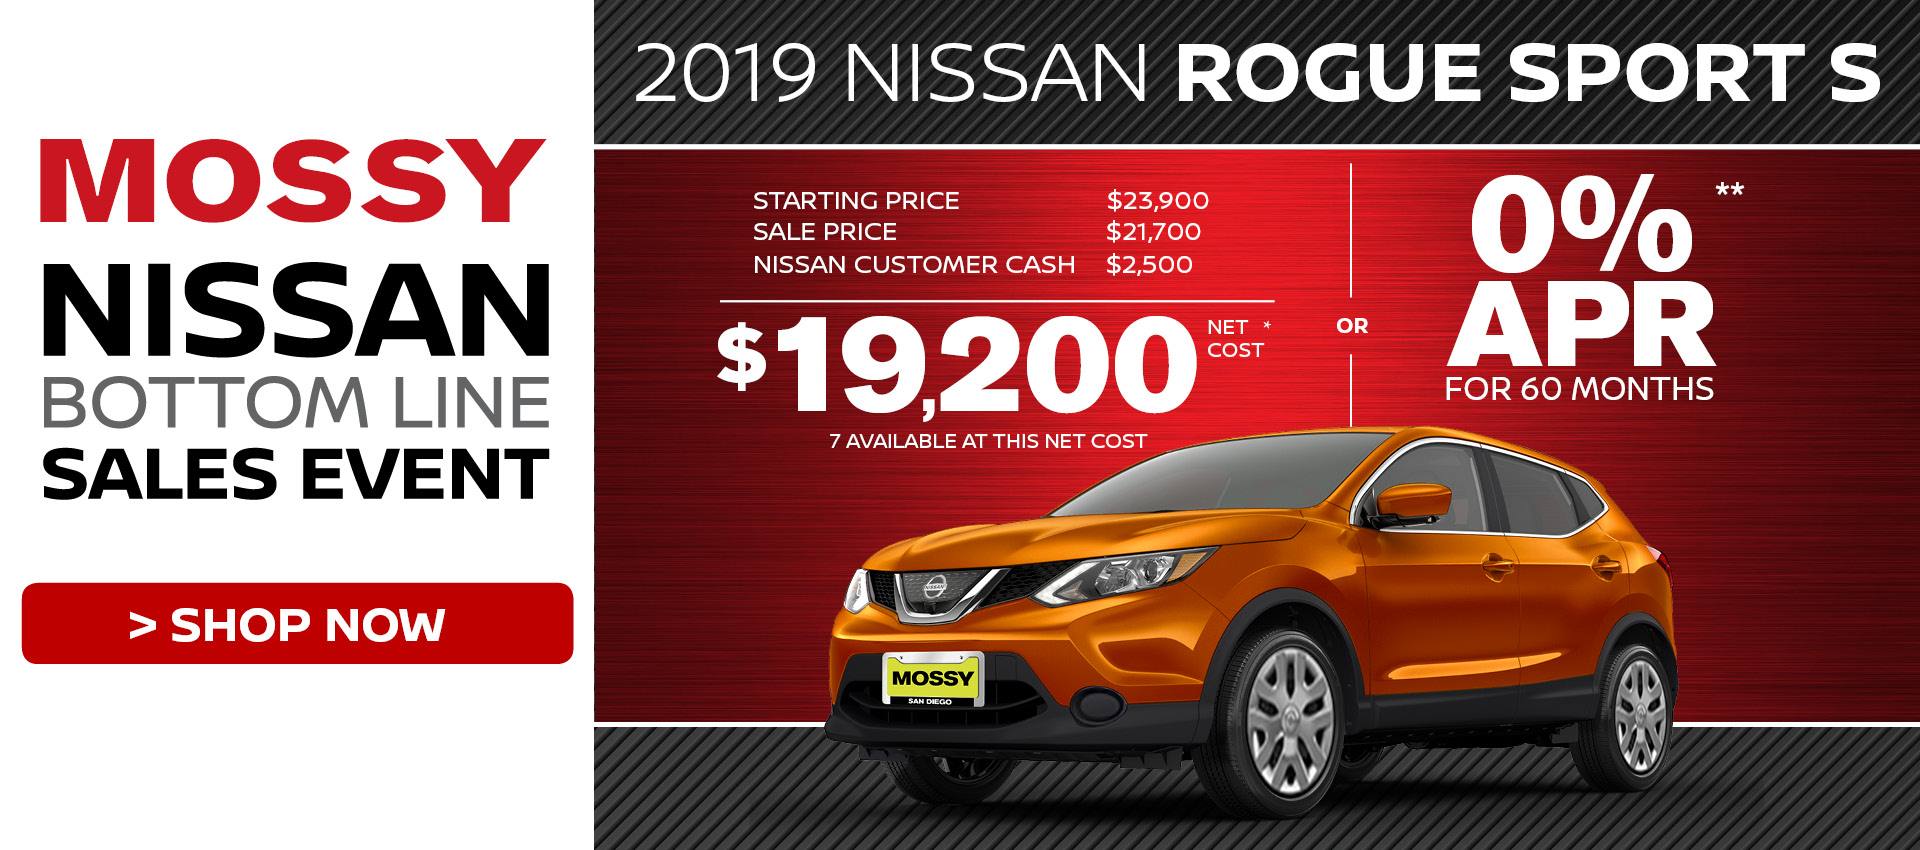 Mossy Nissan - Rogue Sport $19,200 Purchase HP